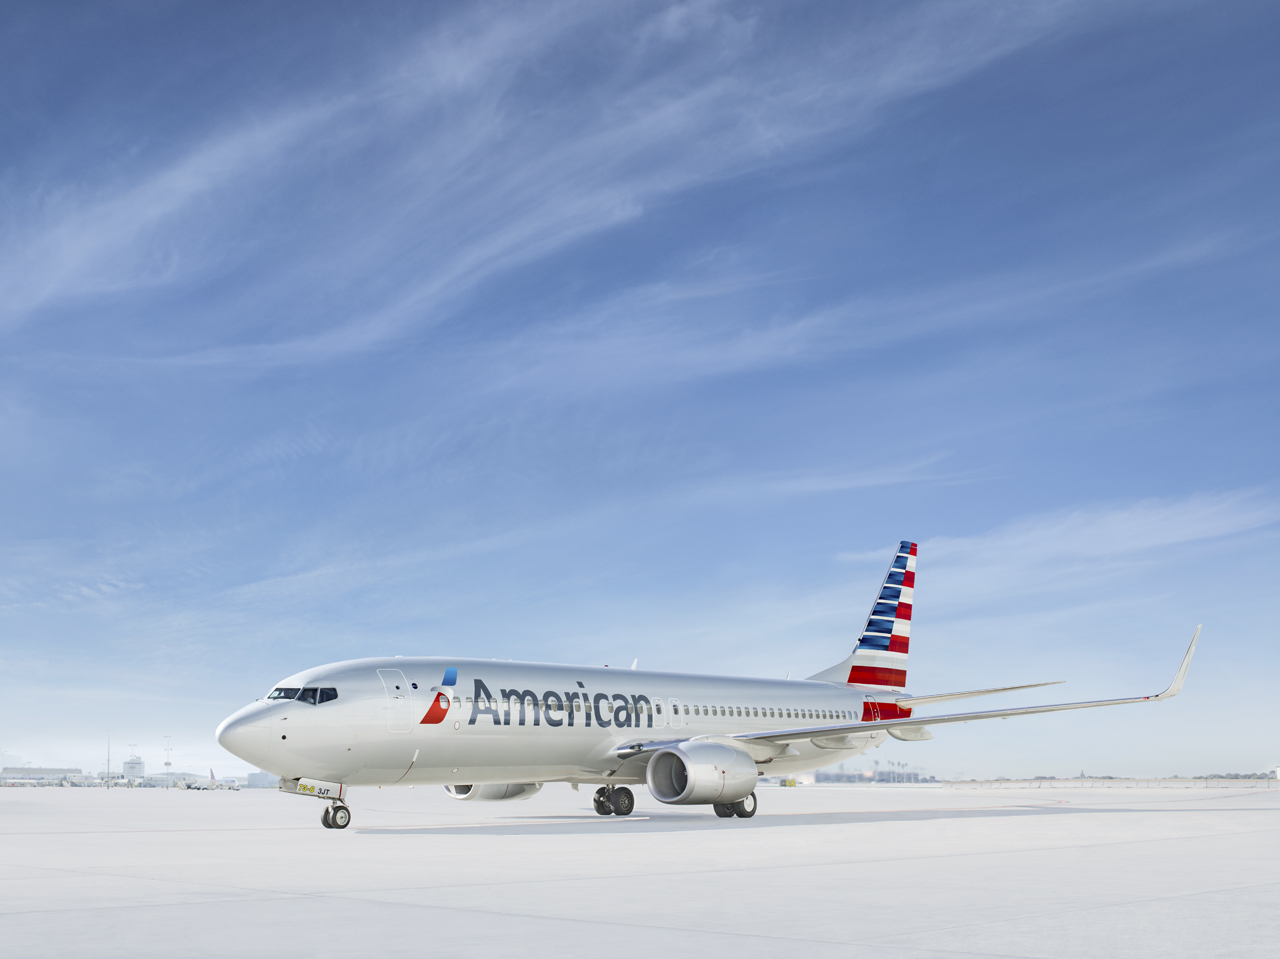 Aircraft-Exterior-AA-737-Livery-Left-Front-Side.jpg